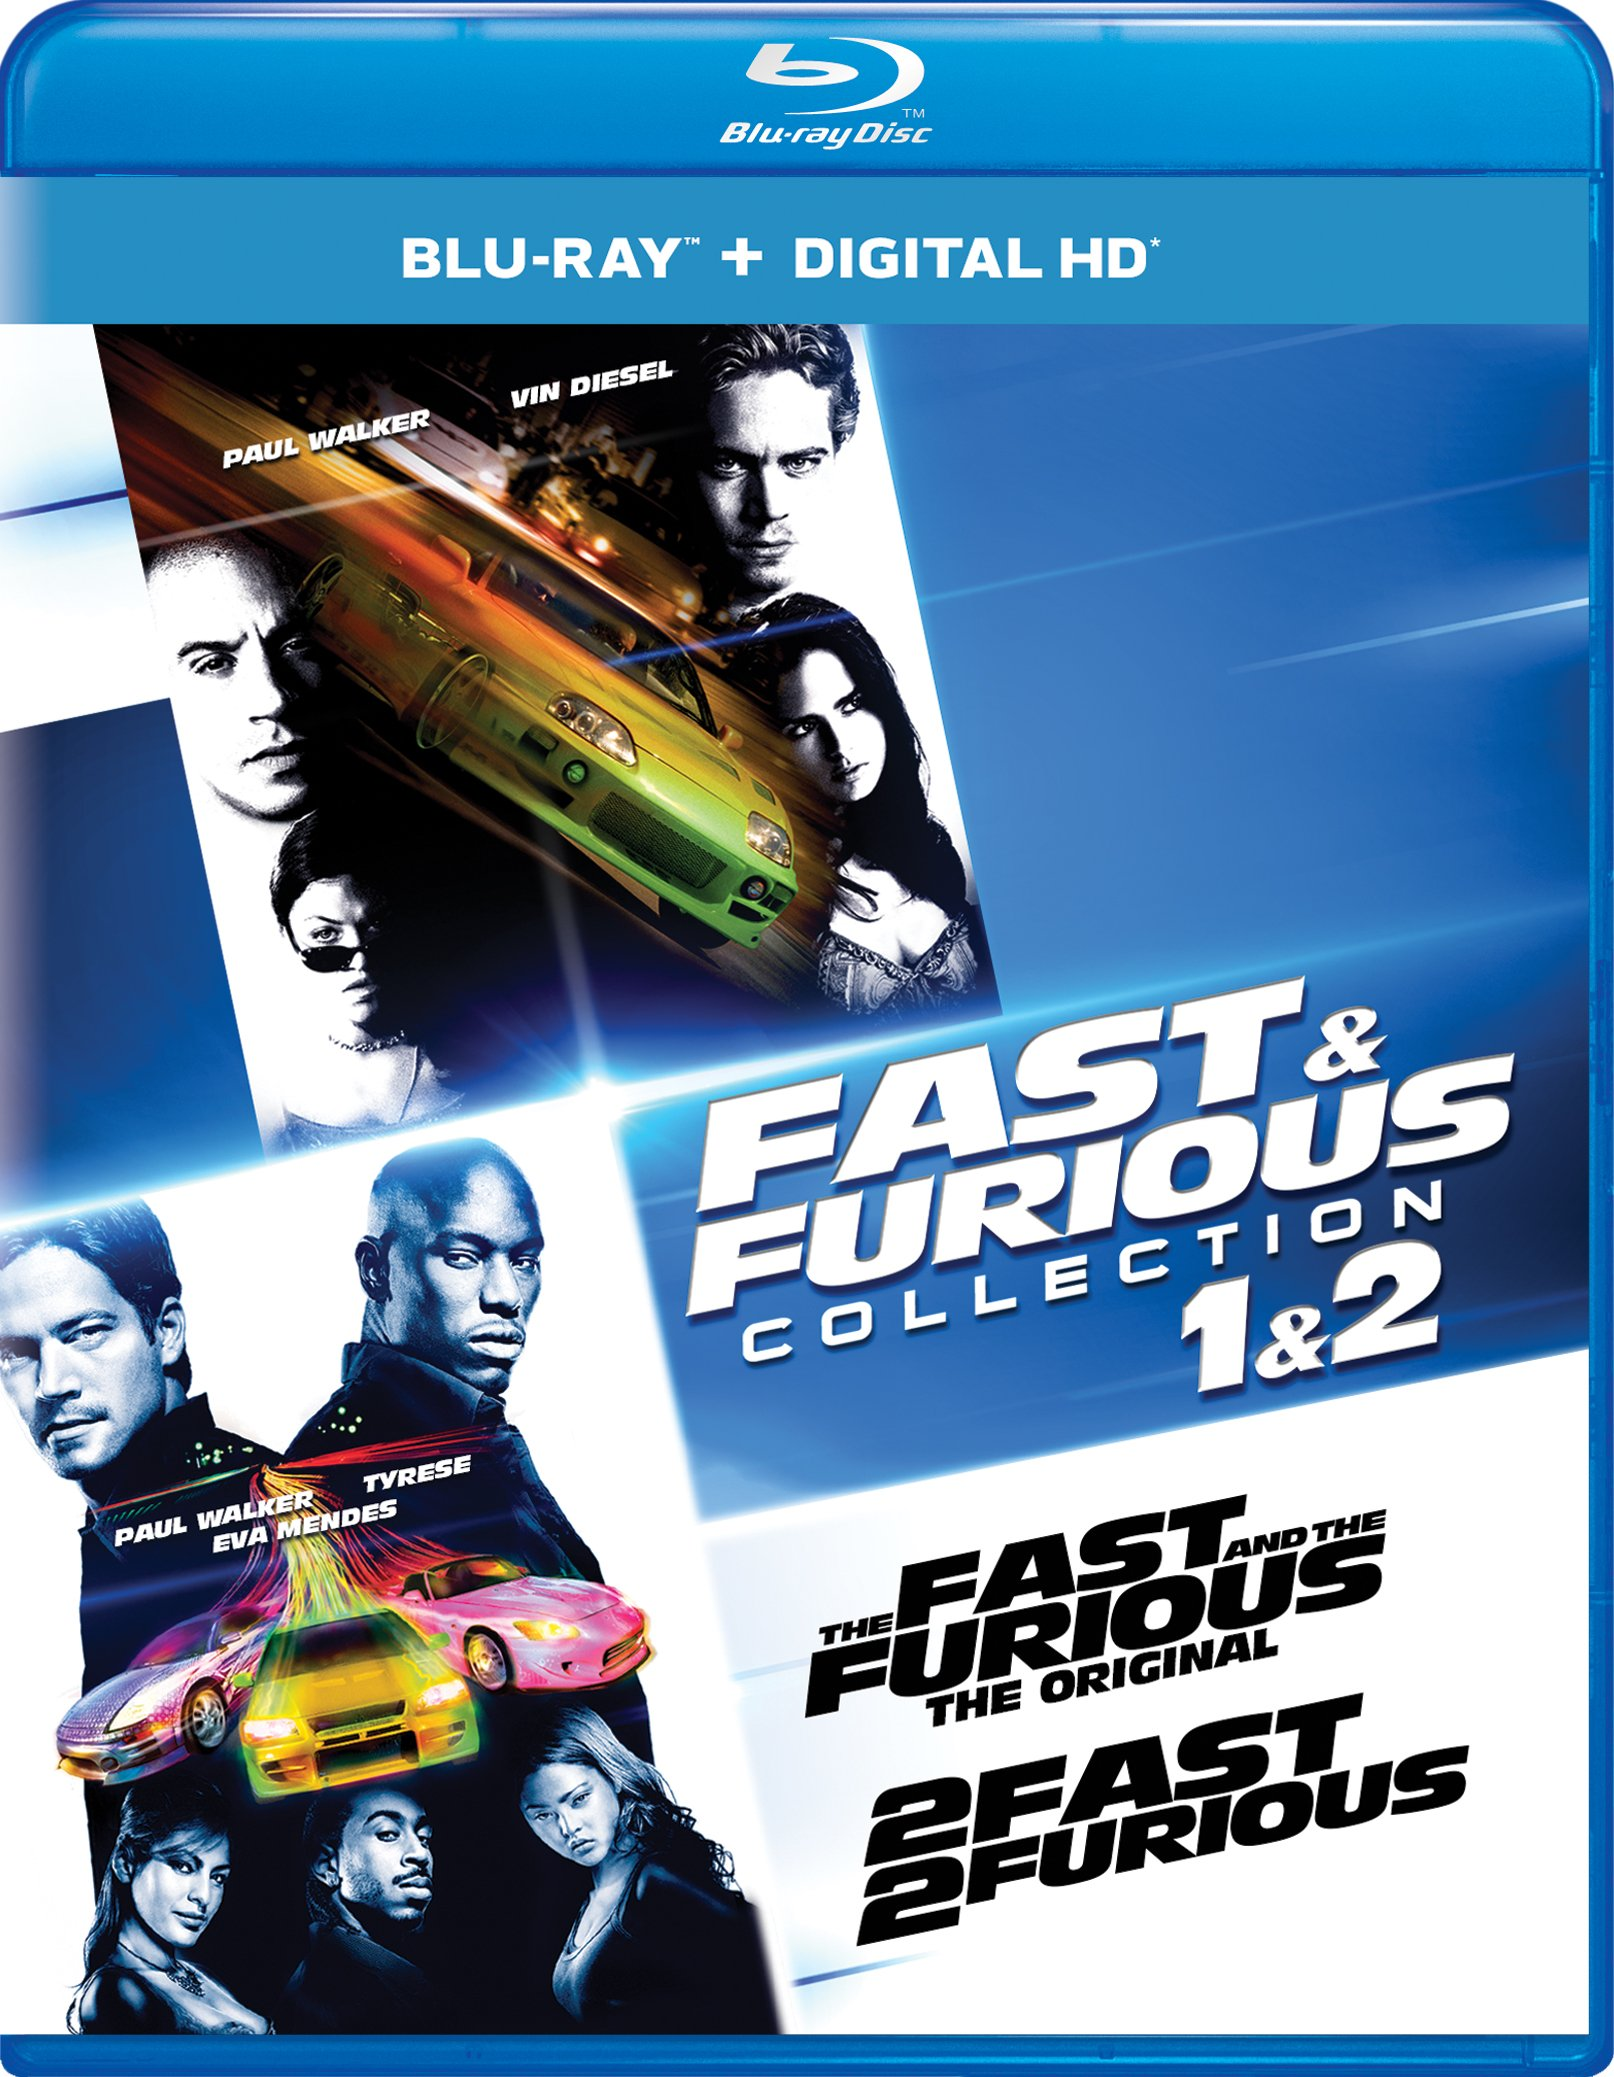 Blu-ray : Fast & Furious Collection: 1 & 2 (Ultraviolet Digital Copy, Snap Case, Digital Copy, Digitally Mastered in HD, 2 Pack)